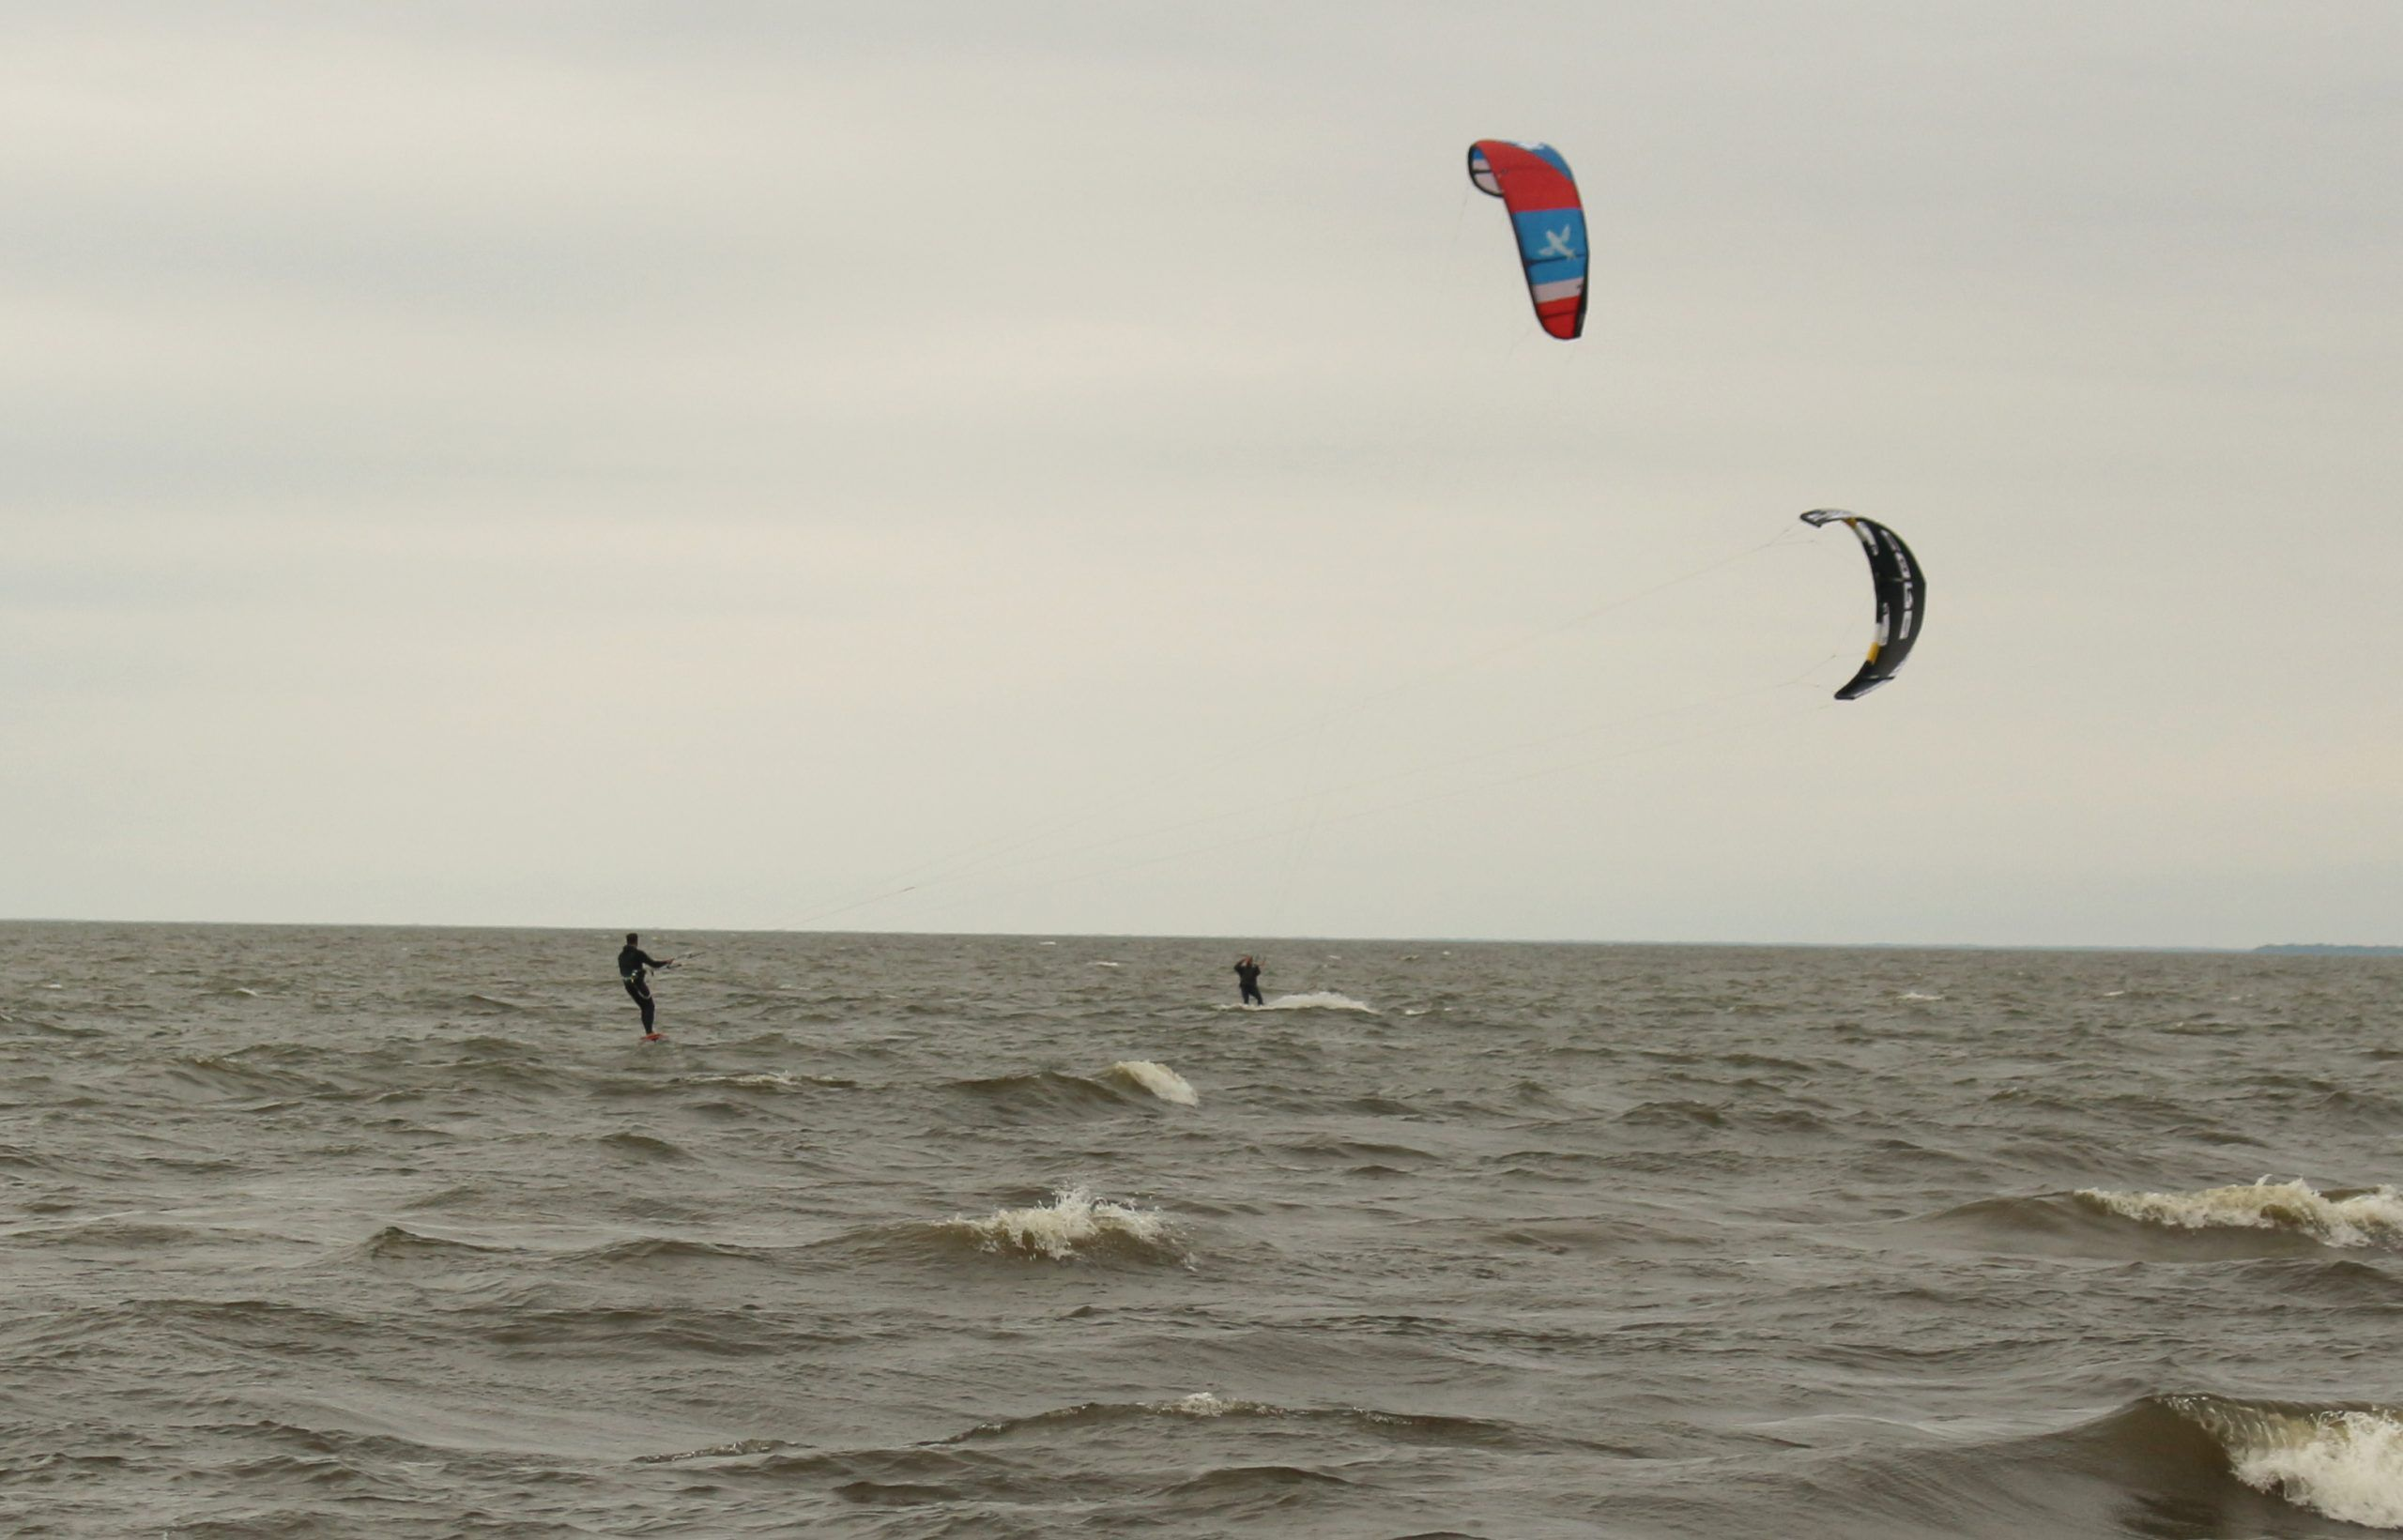 Kite boarders take last kick at the waves – Woodstock Sentinel Review